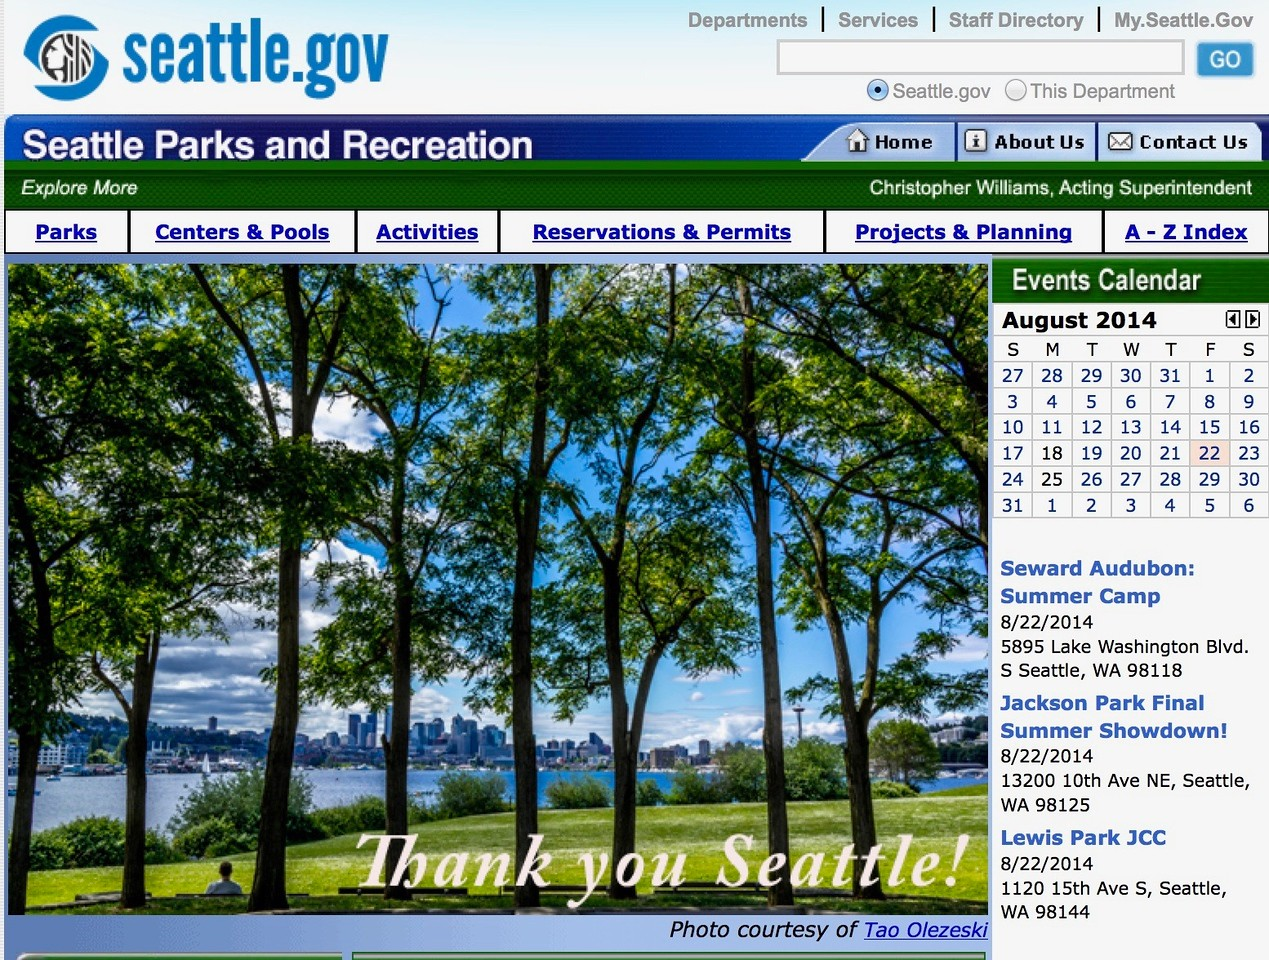 Seattle.gov 2014